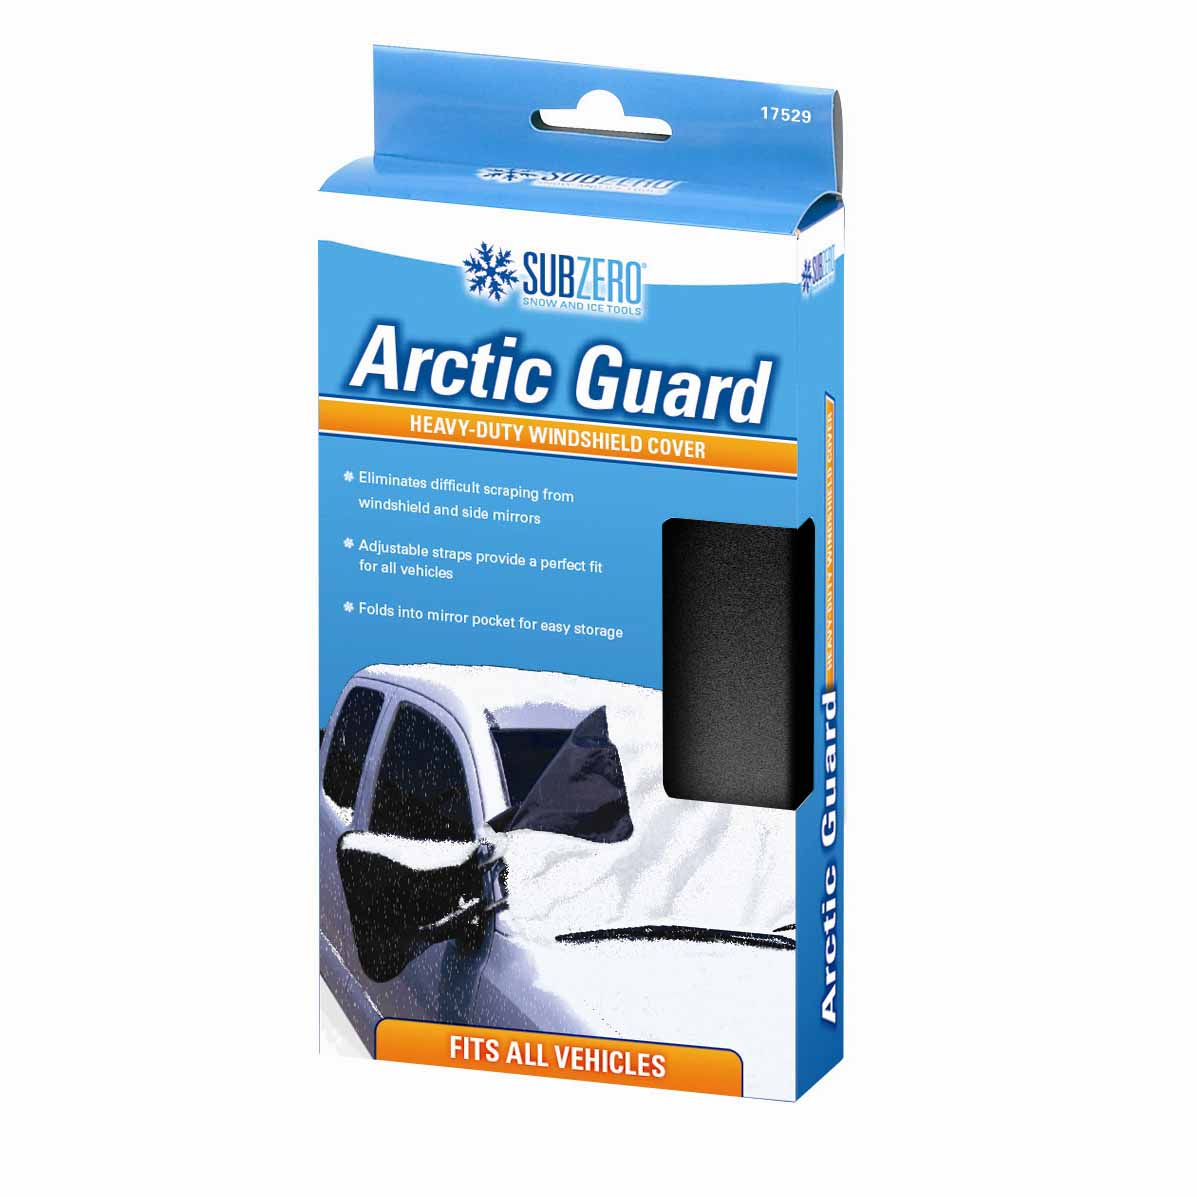 Subzero Heavy-Duty Windshield Cover